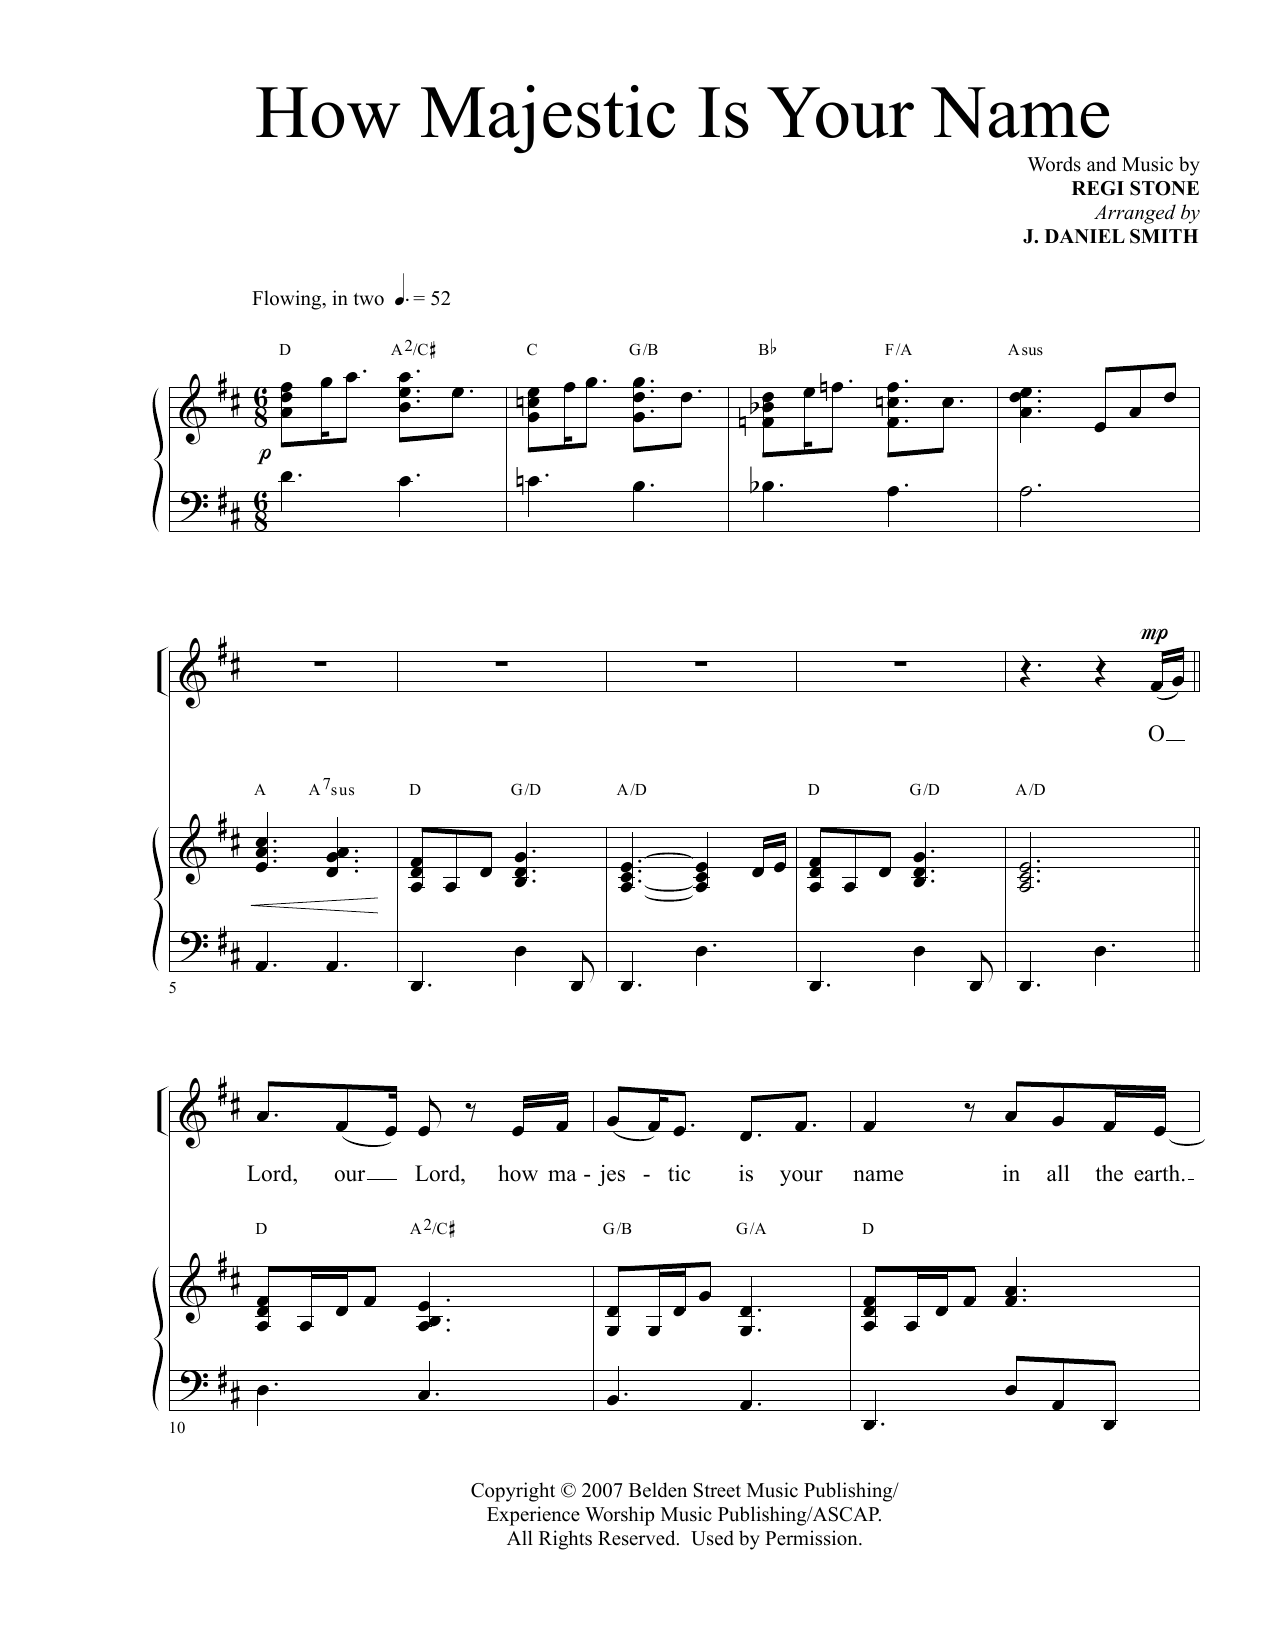 Regi Stone How Majestic Is Your Name (arr. J. Daniel Smith) sheet music notes and chords. Download Printable PDF.